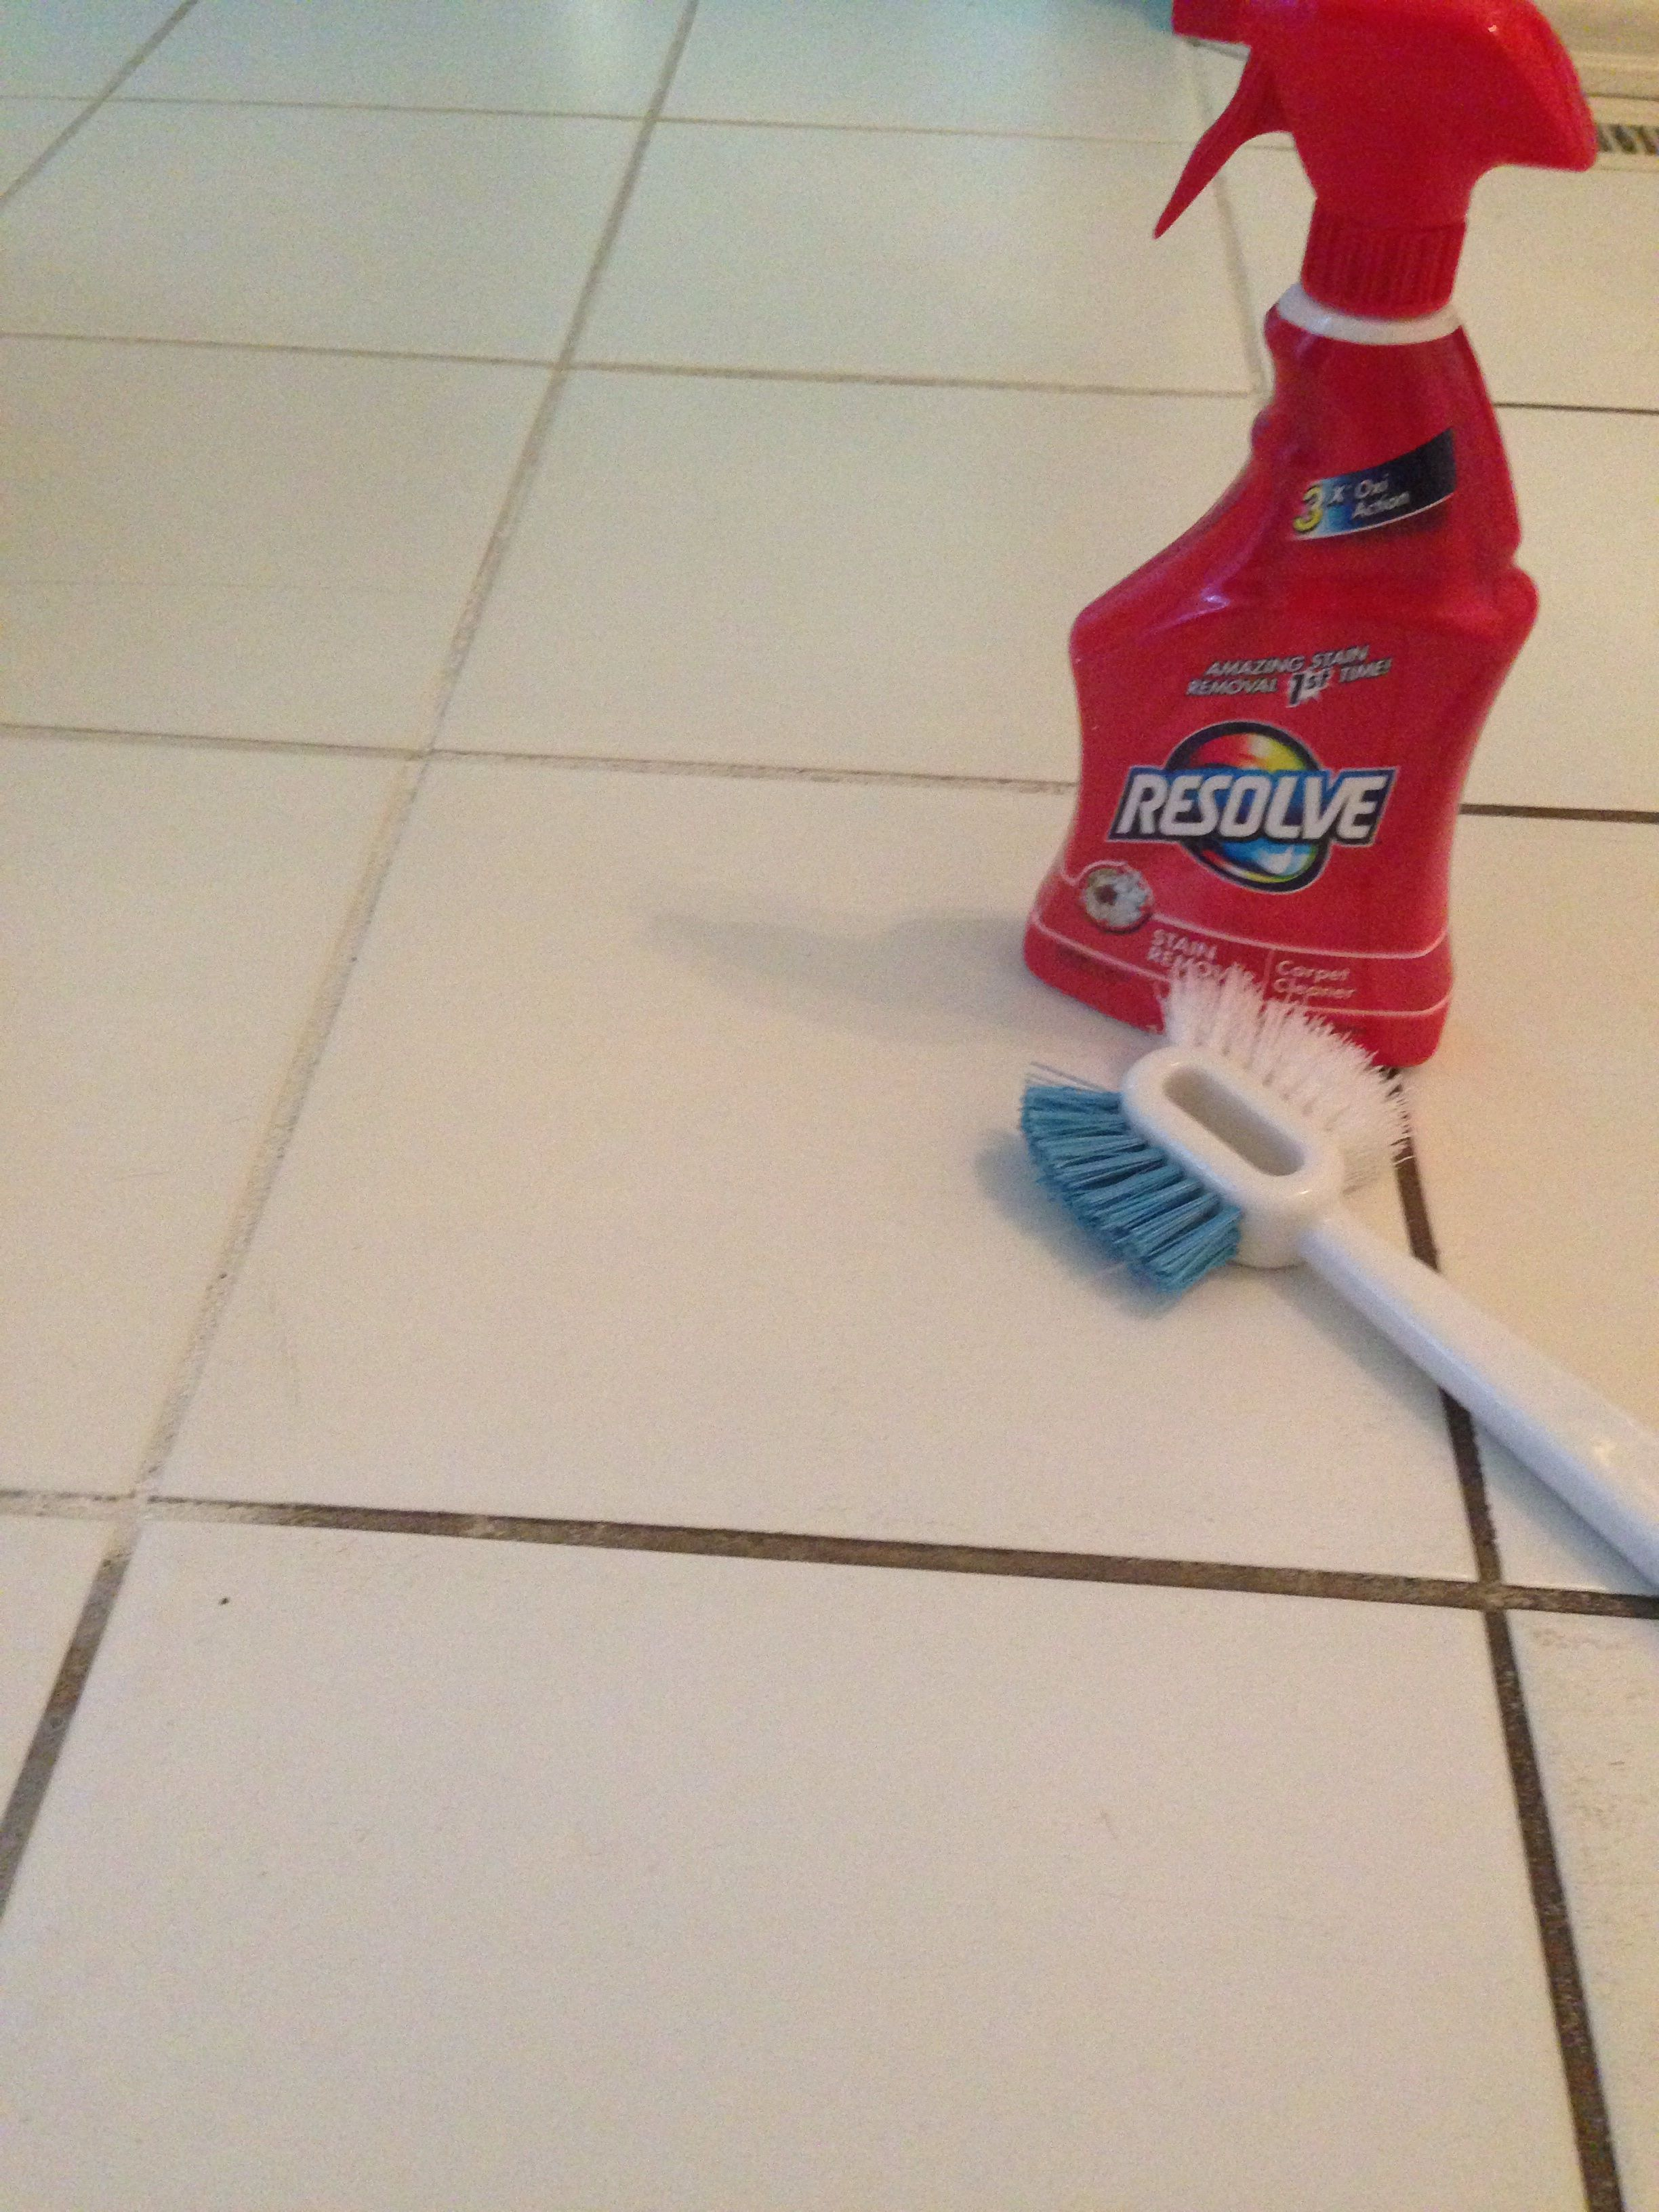 Resolve Carpet Cleaner To Clean Grout Cleaning Hacks throughout size 2448 X 3264